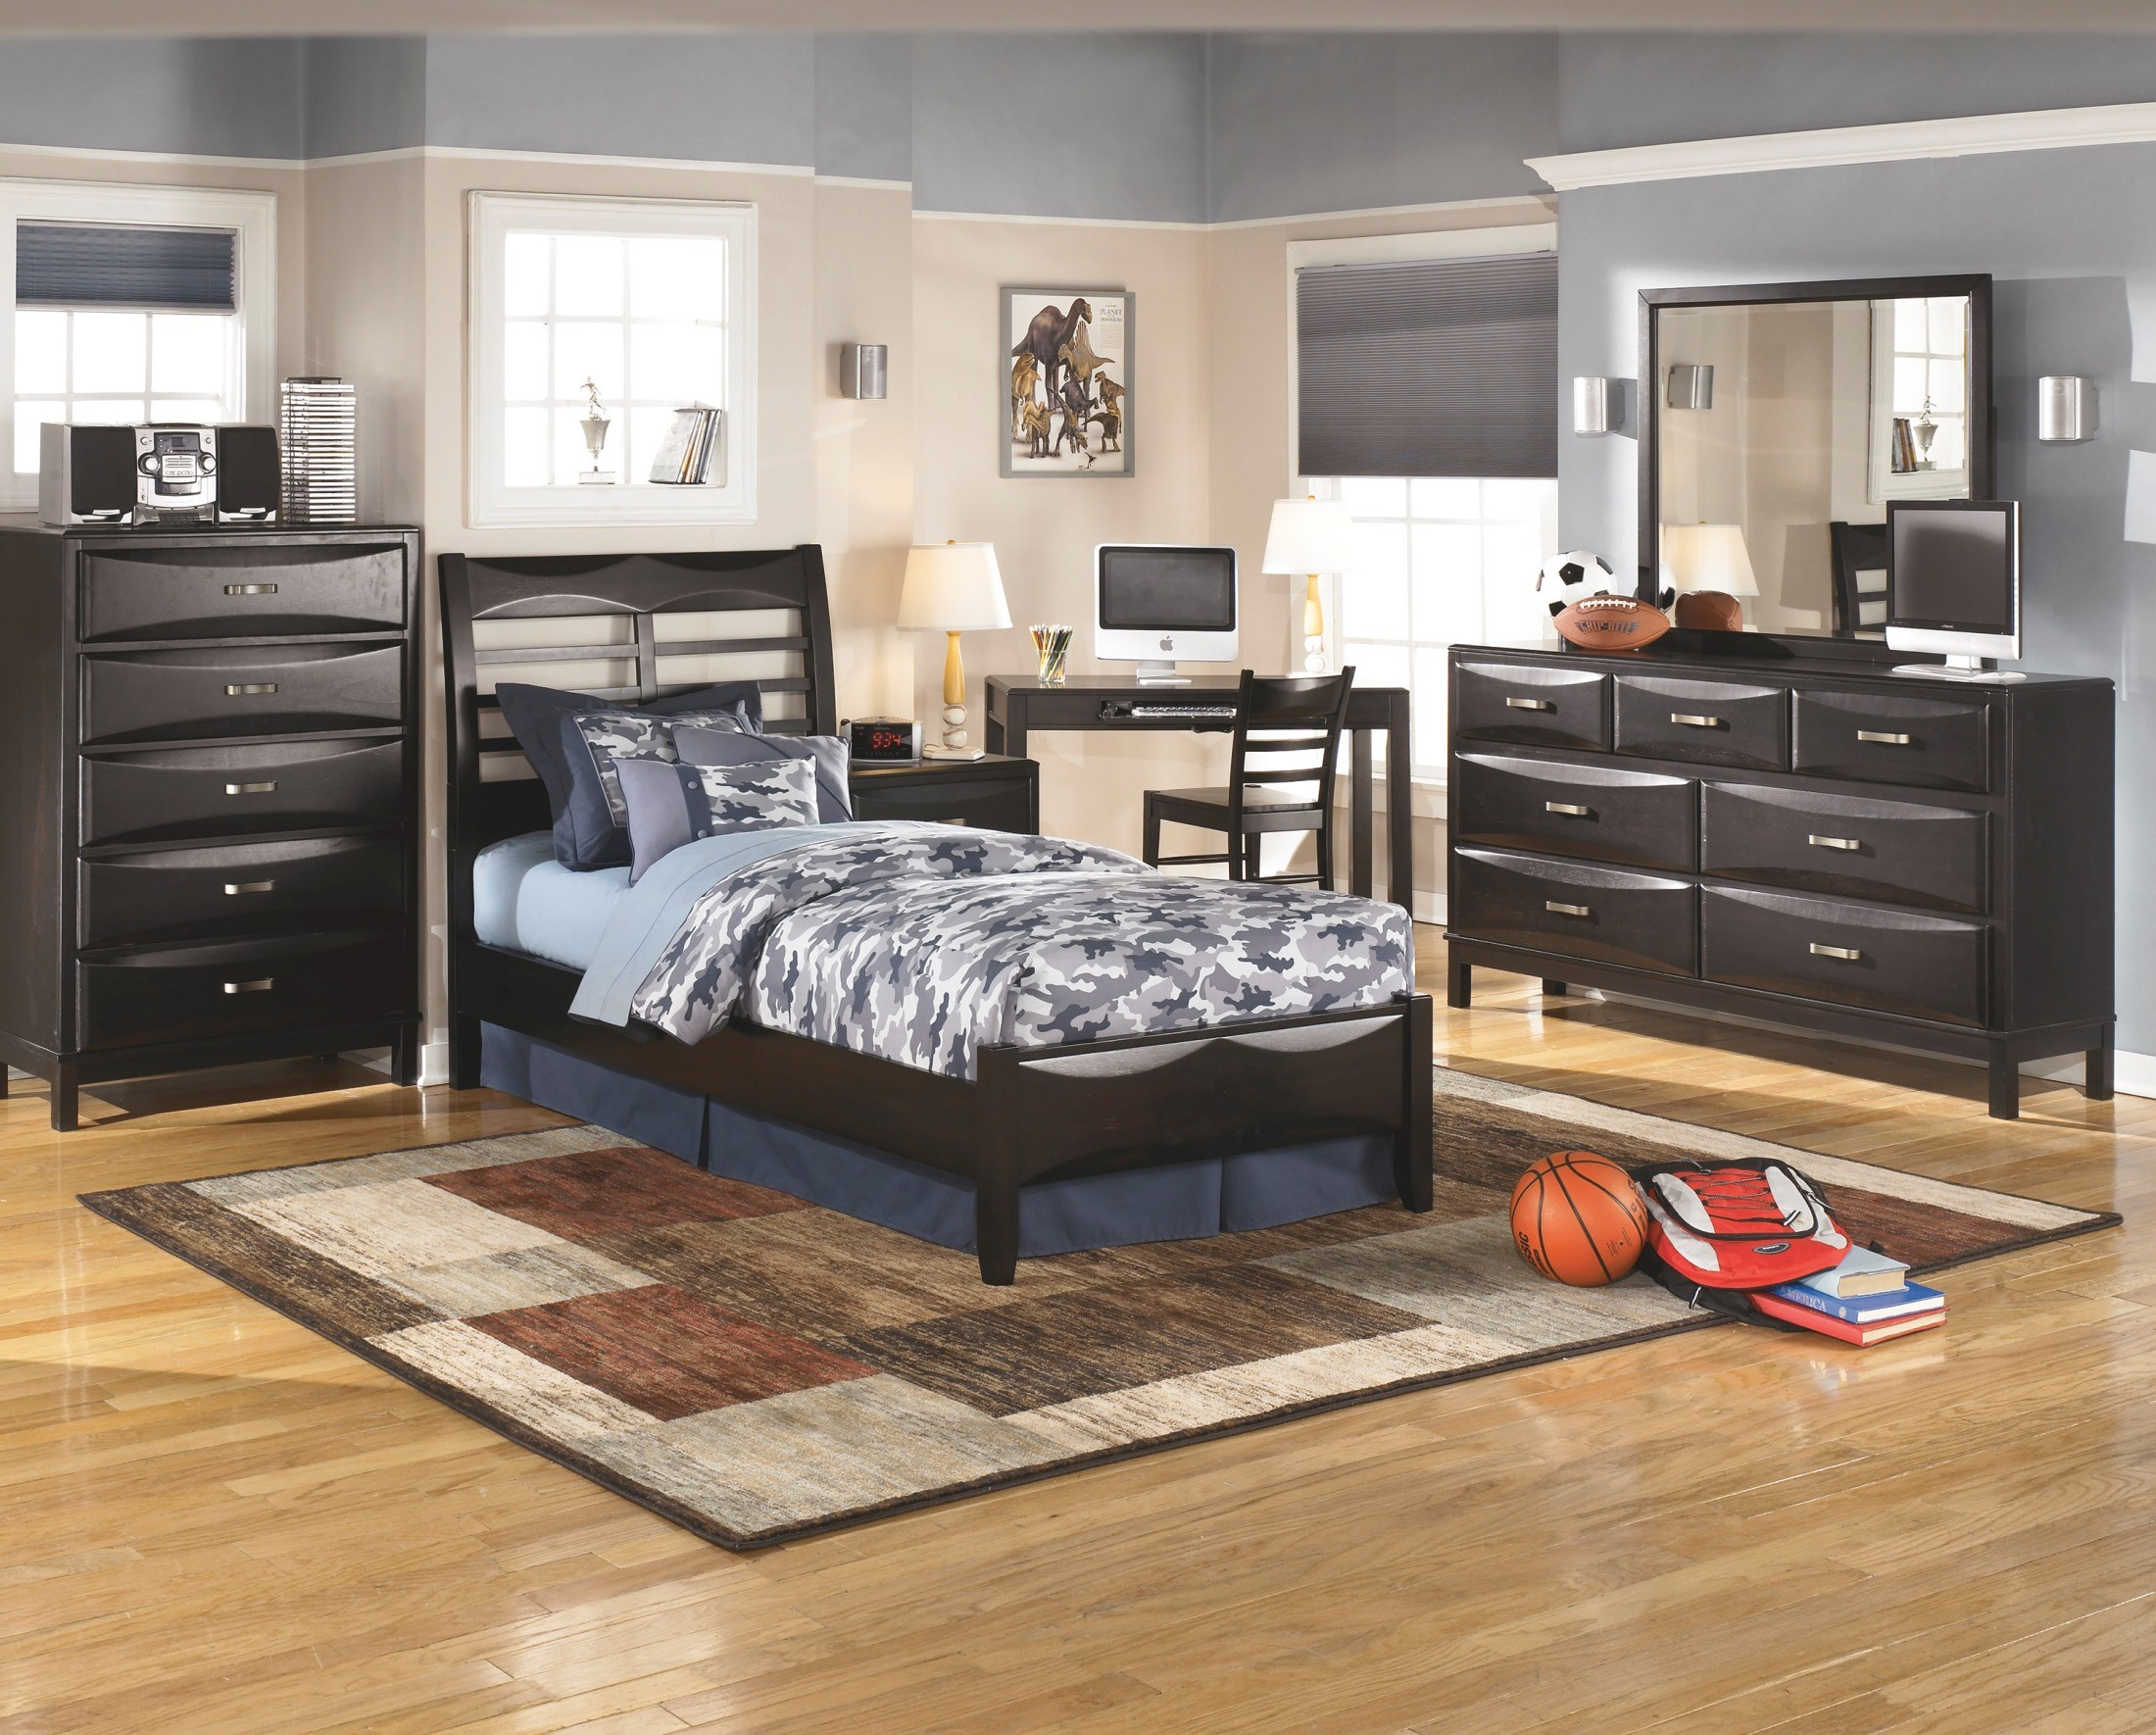 kira youth panel bedroom set from ashley b473 84 86 87 coleman